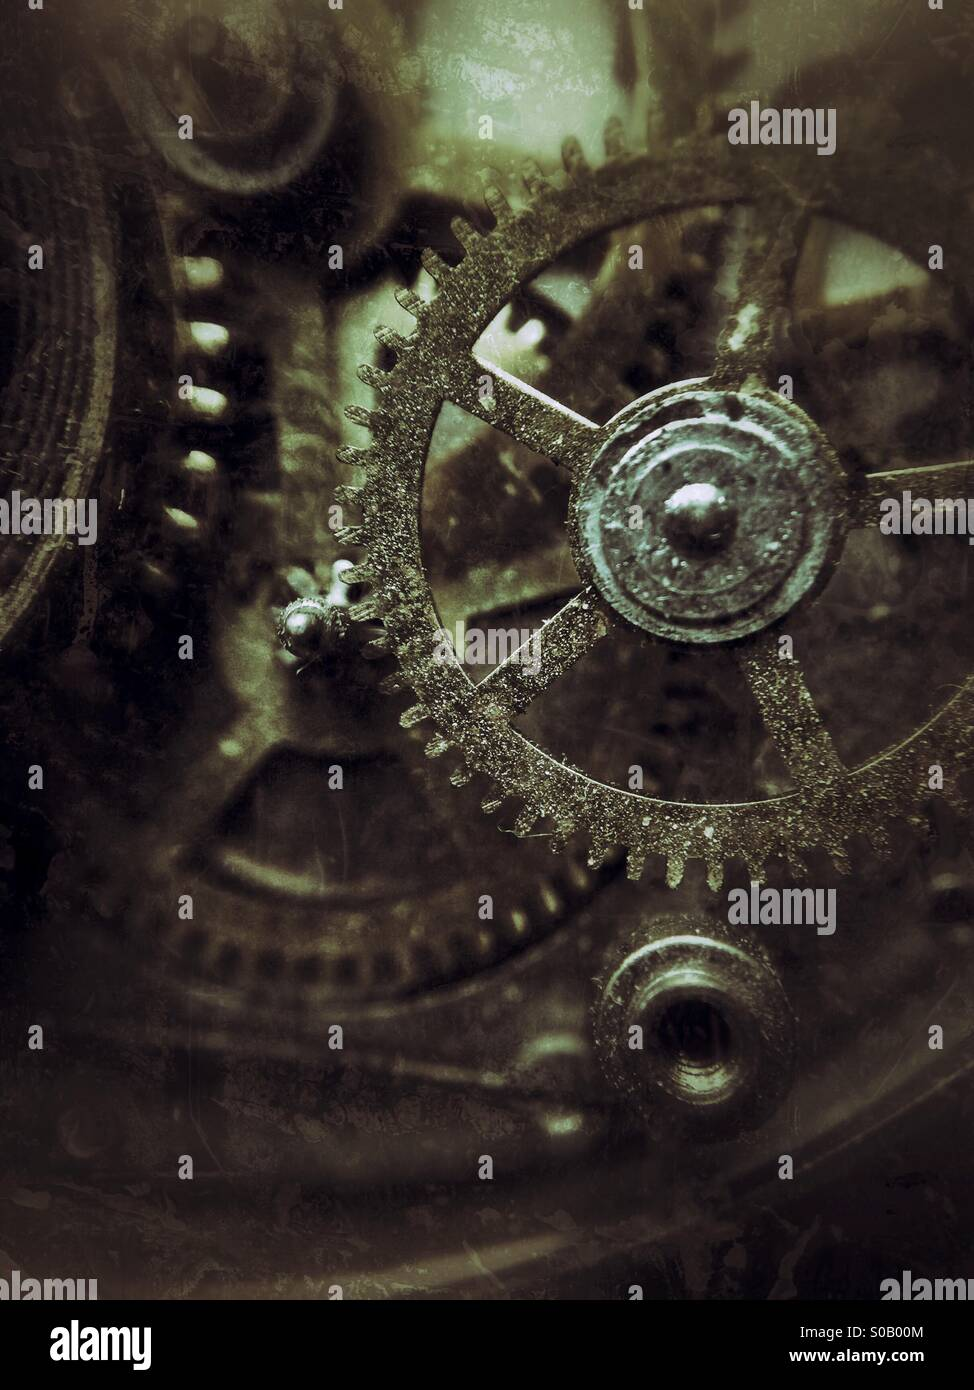 Macro image of pocket watch parts. - Stock Image